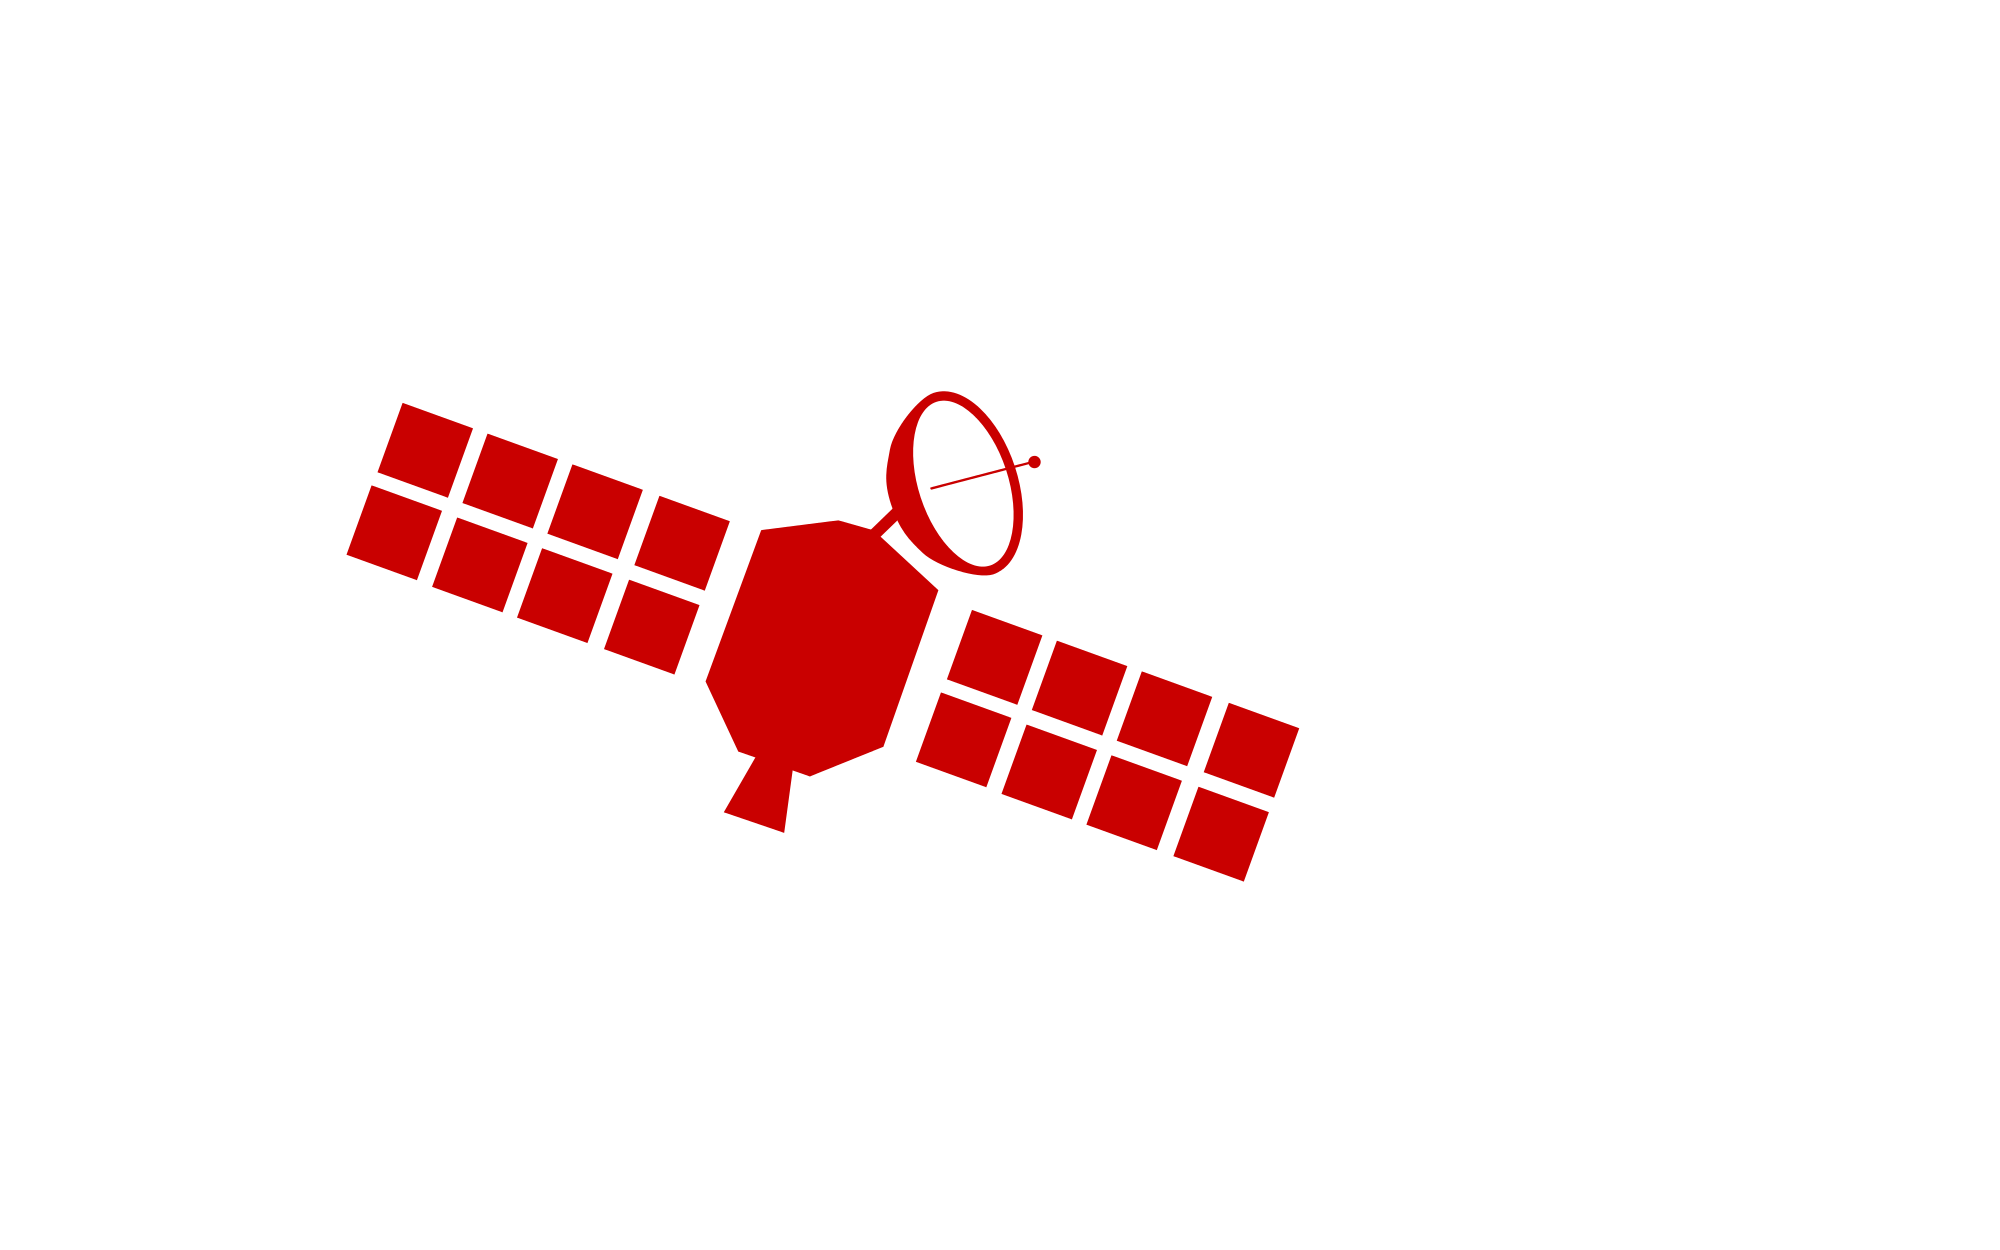 Space probe png. File icon svg wikimedia